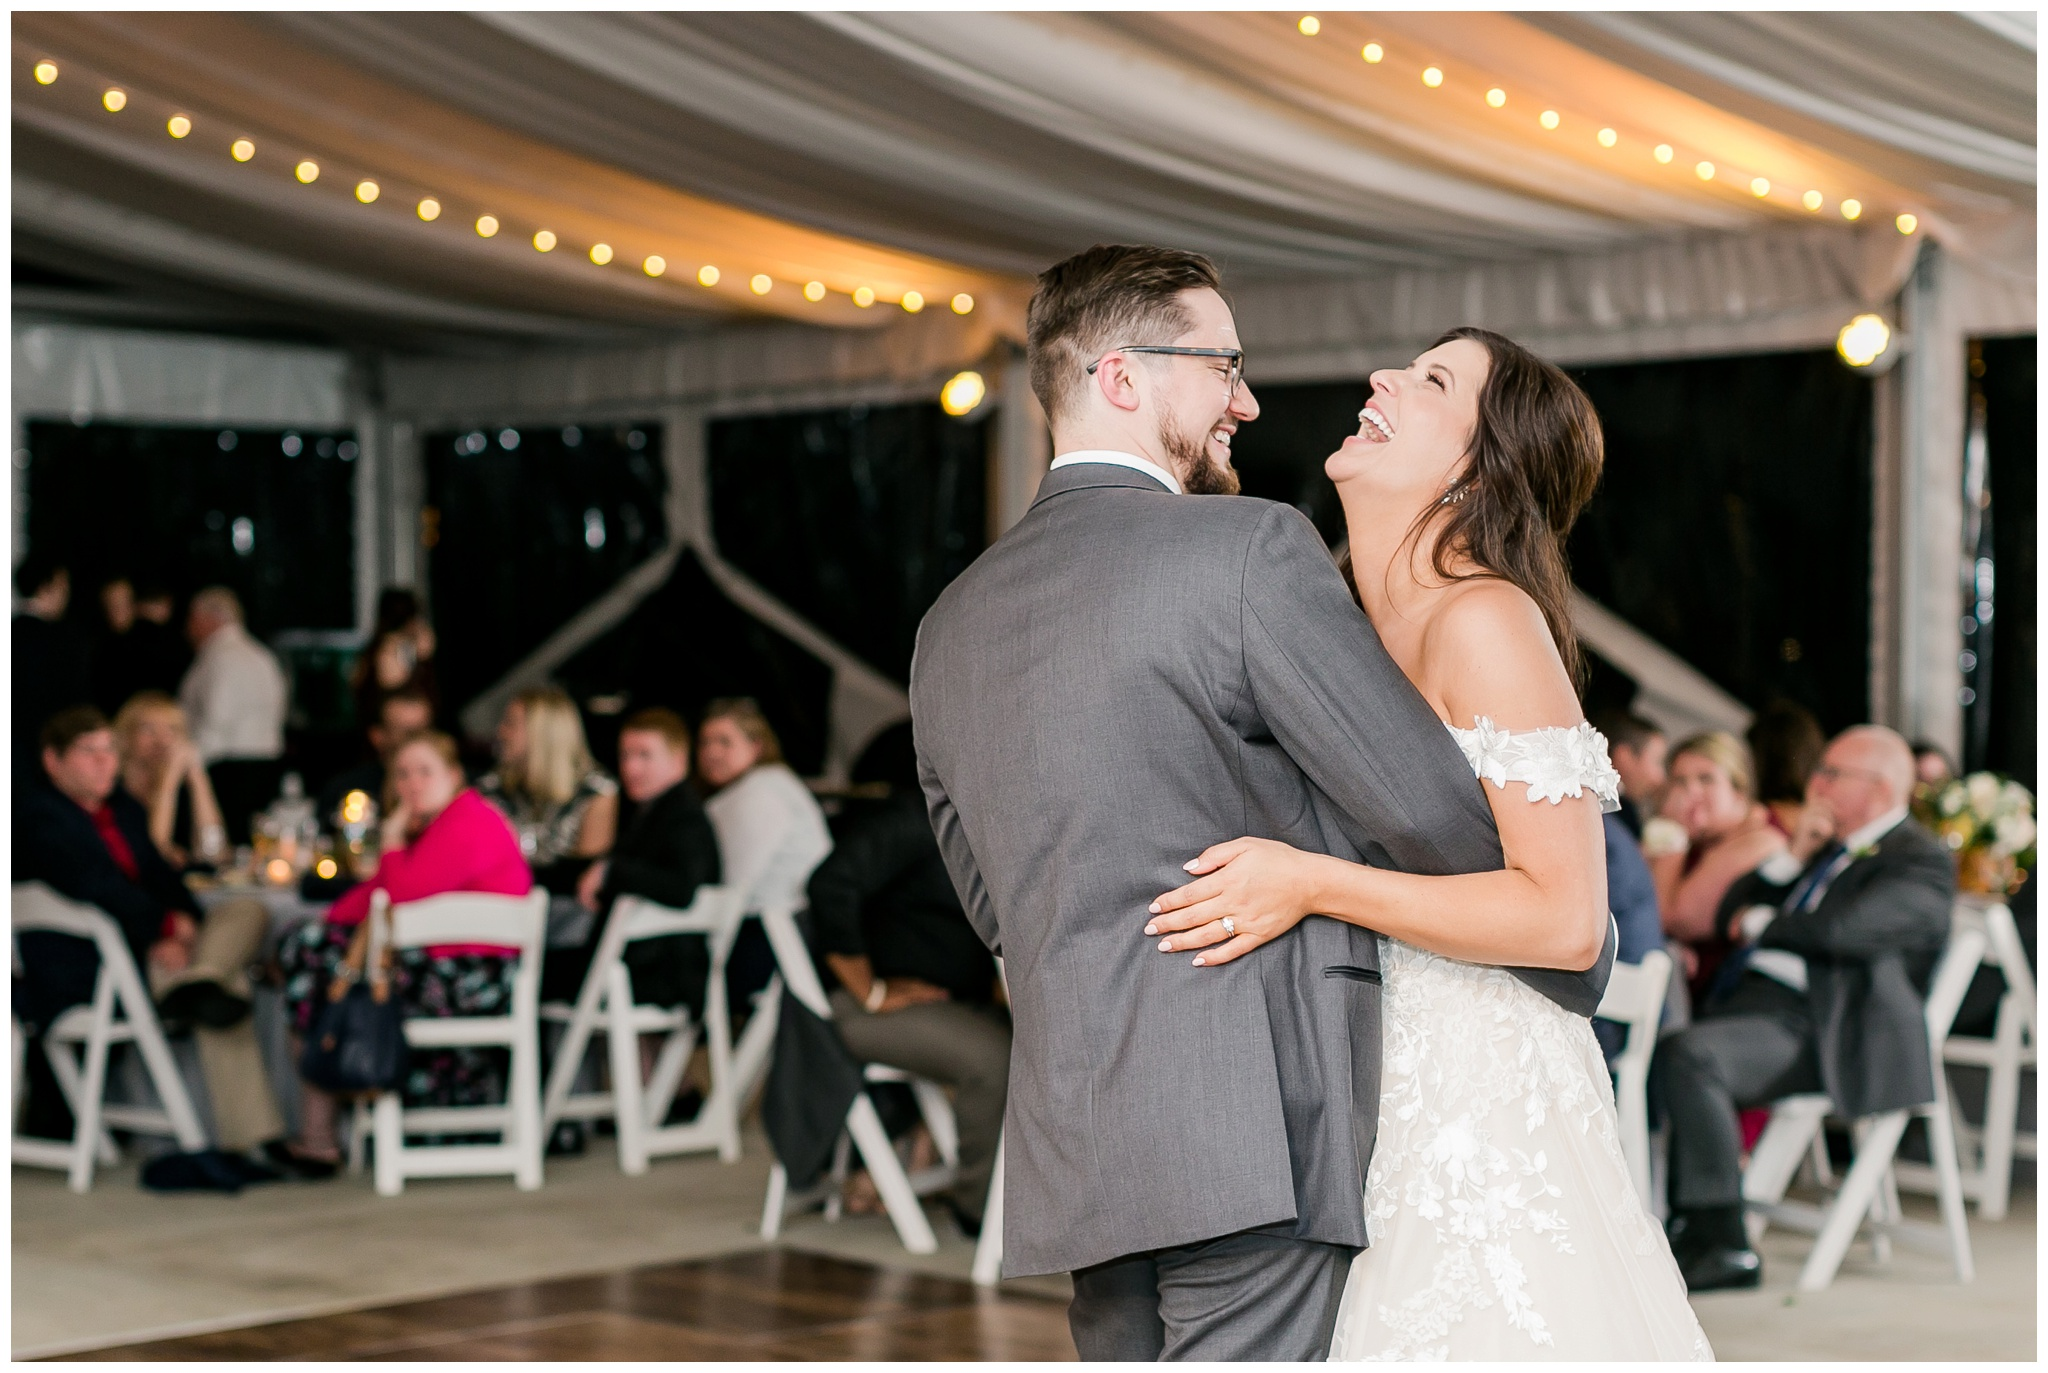 bishops_bay_country_club_wedding_middleton_wisconsin_caynay_photo_4746.jpg